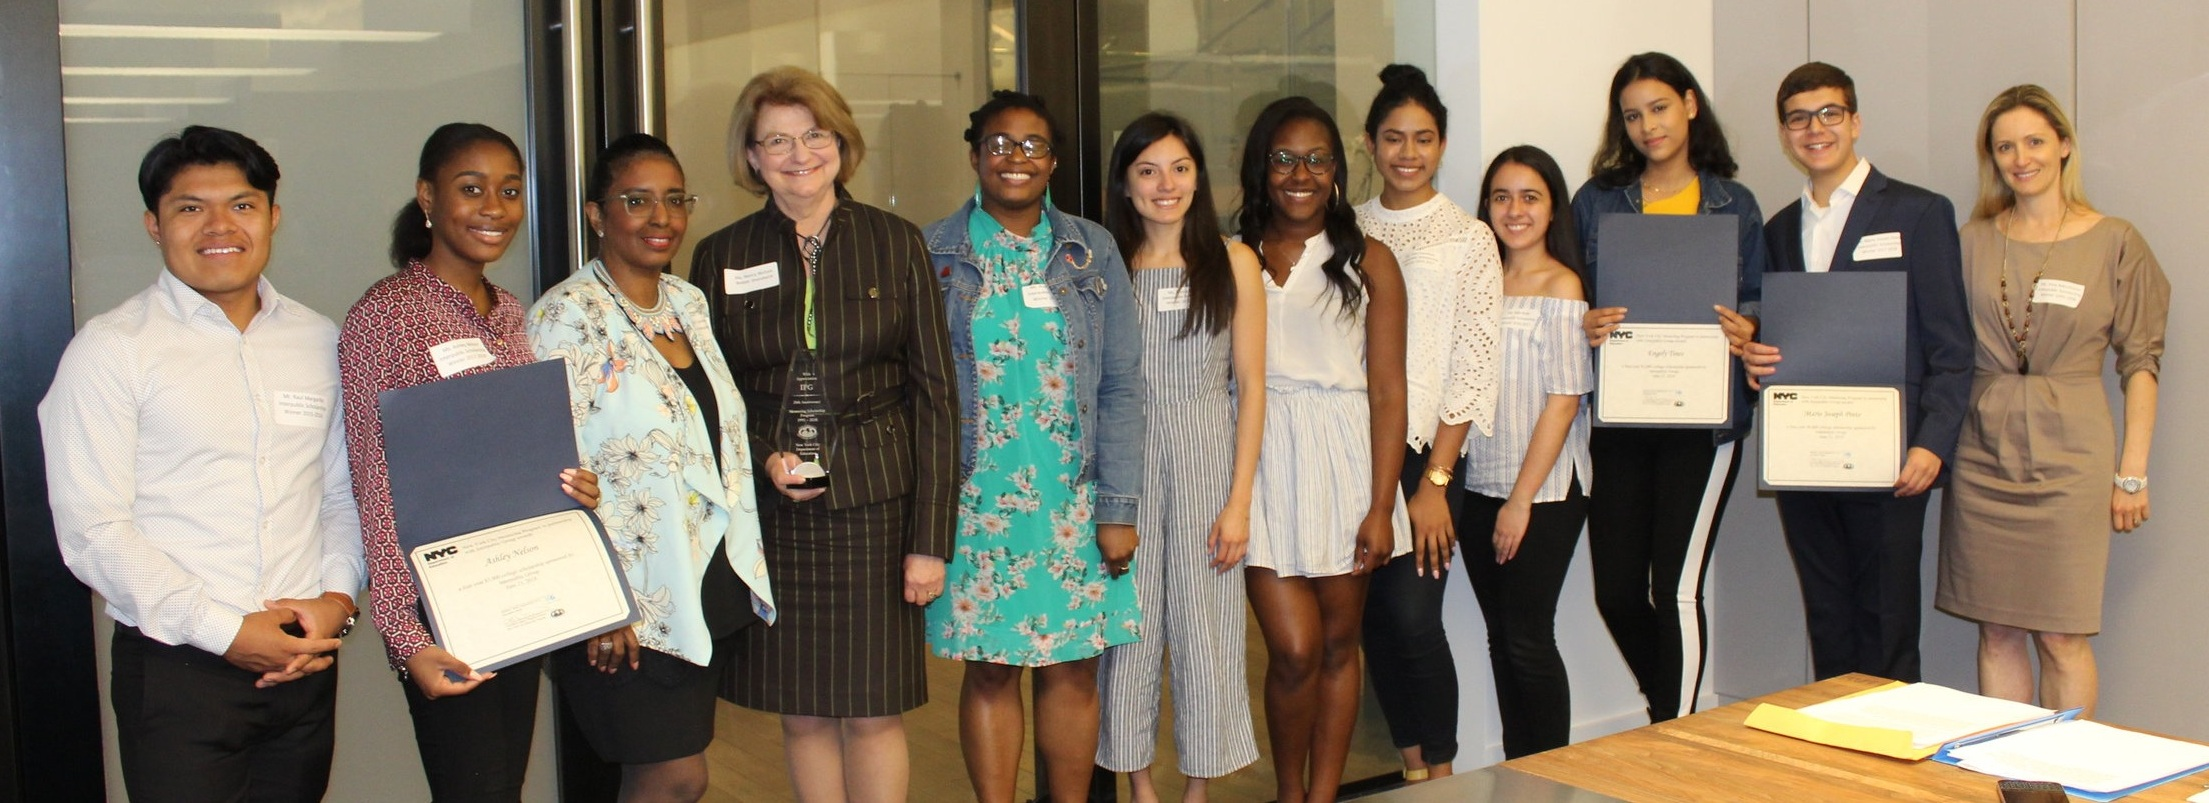 Scholarship winners from 1993 to 2018 present Carolyn Harding and Nancy Rabstejnek Nichols of Interpublic (second and third from left) with a Flame Award in appreciation of the IPG Mentoring Scholarship Program's 25th anniversary.